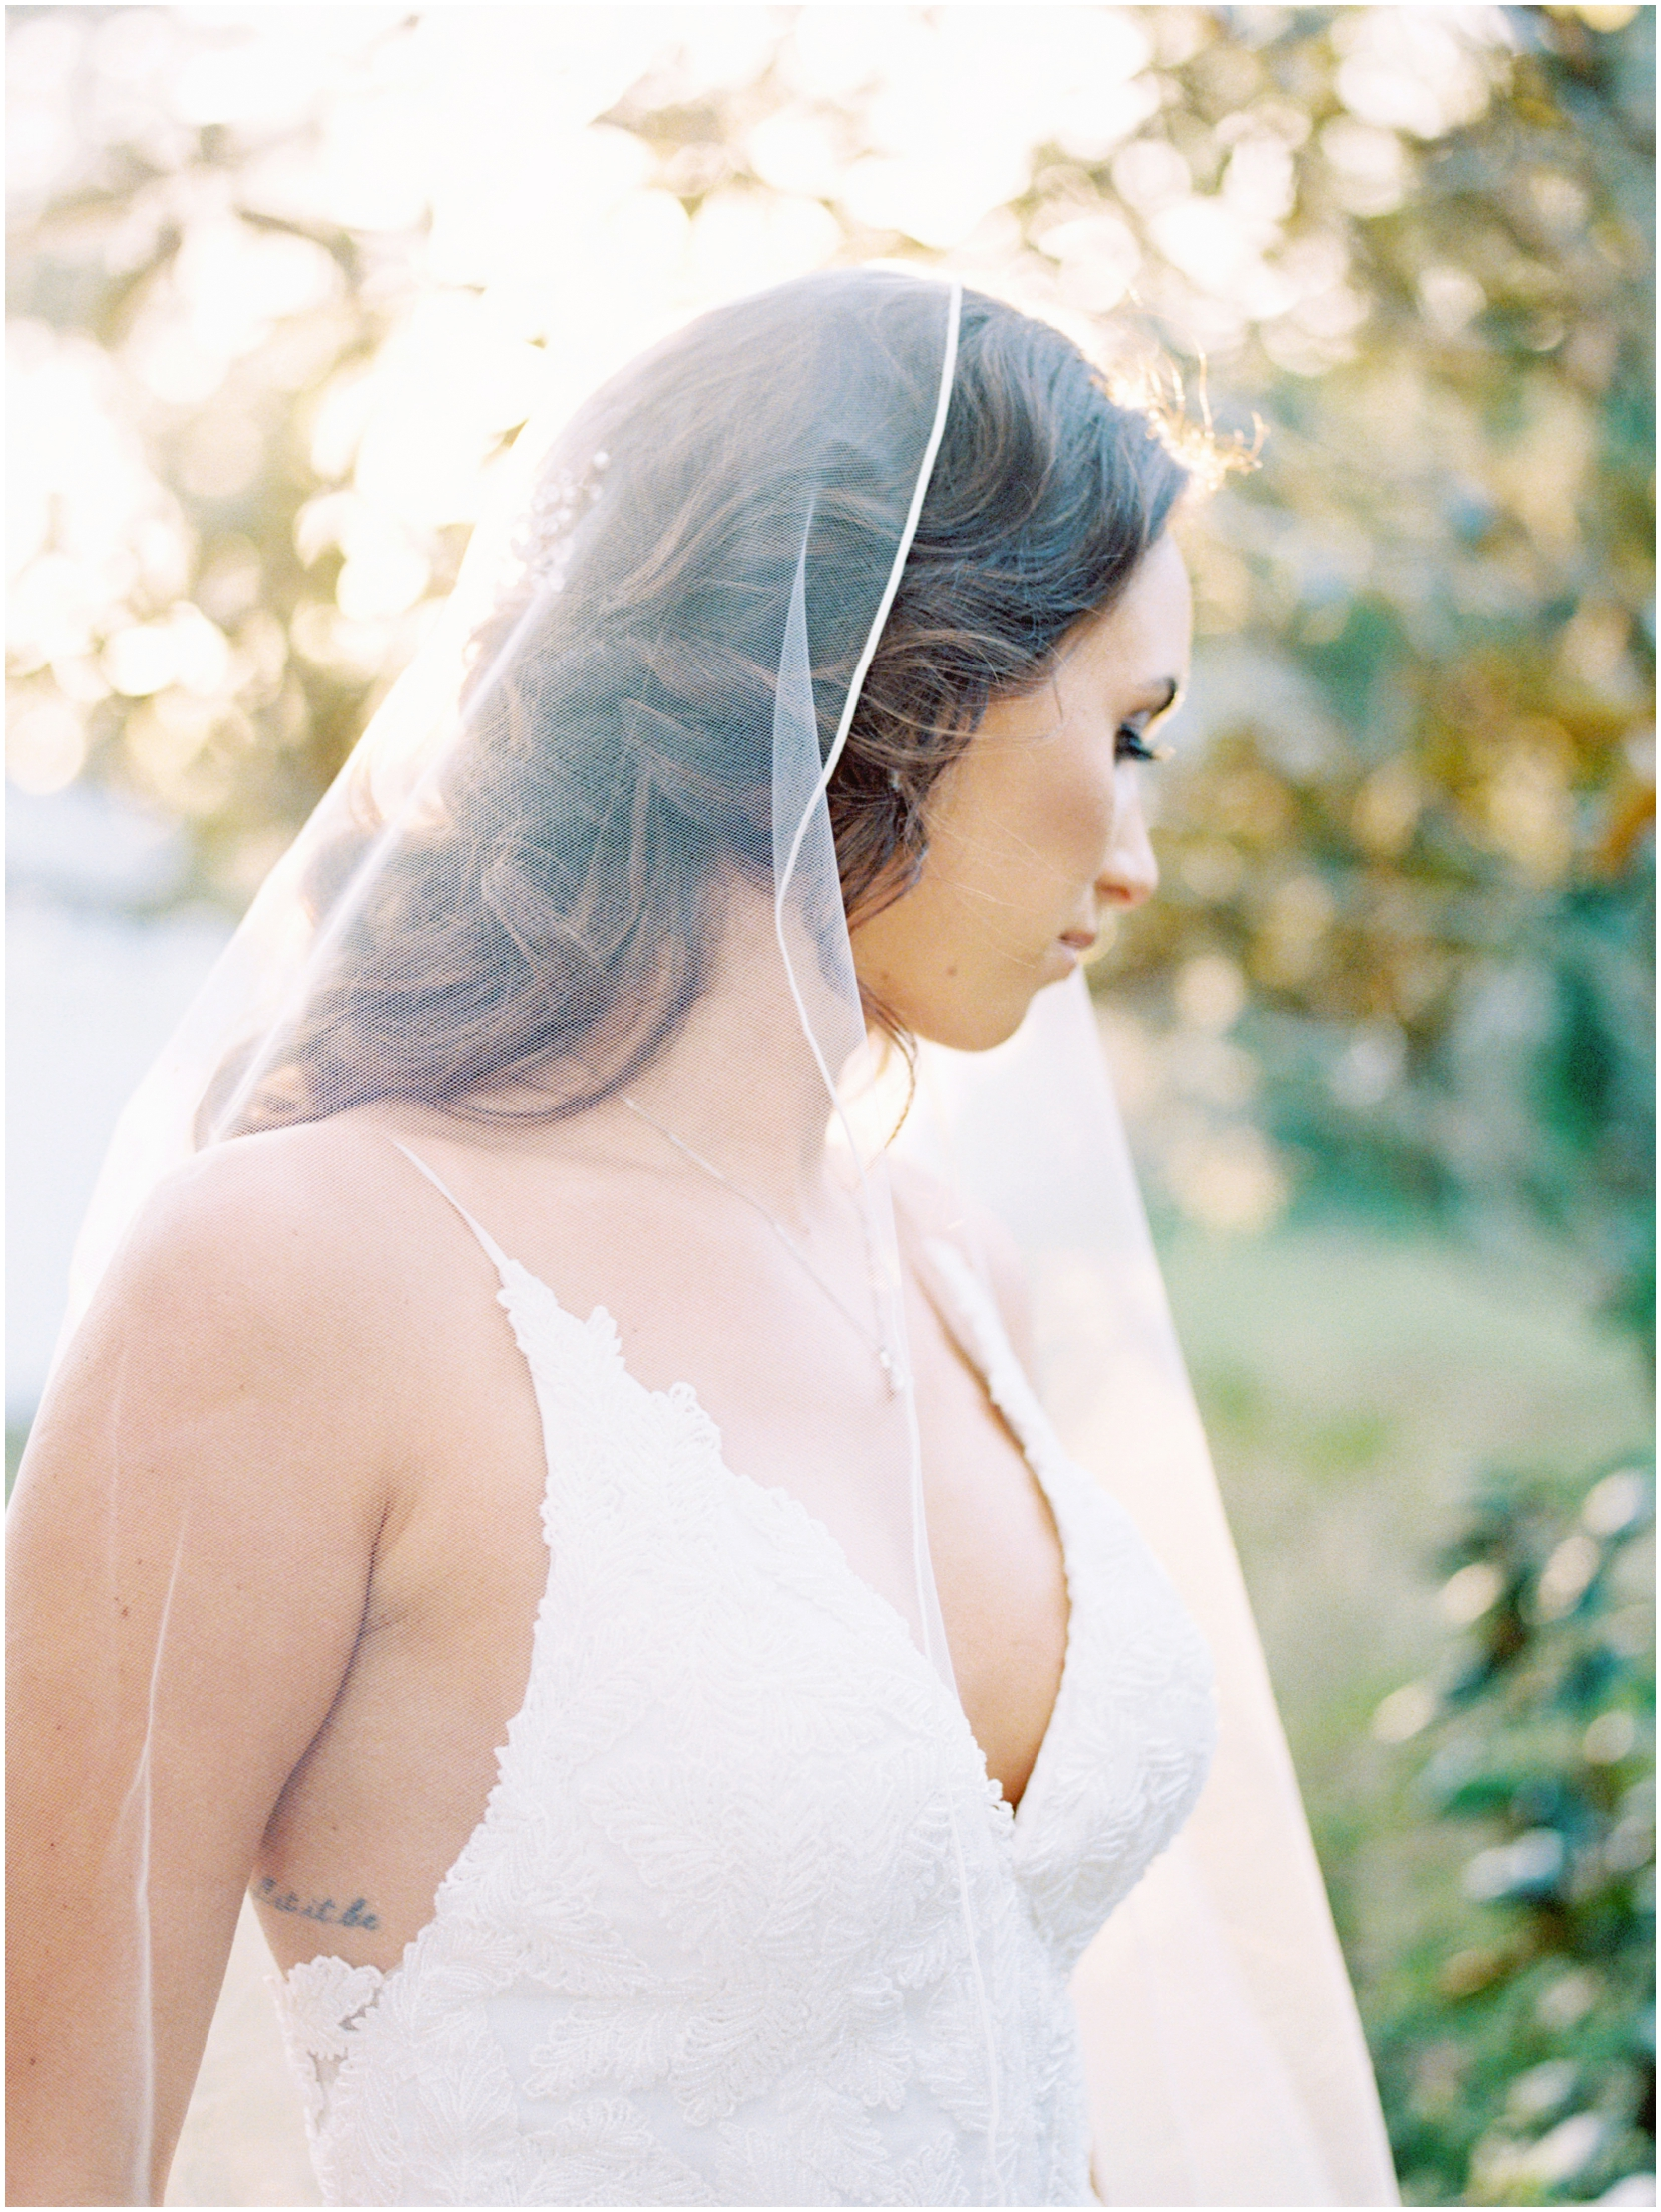 Lisa Silva Photography -Bridal Portrait Session in St. Augustine, Florida- Jacksonville and North East Florida Fine Art Film Photographer_0030.jpg